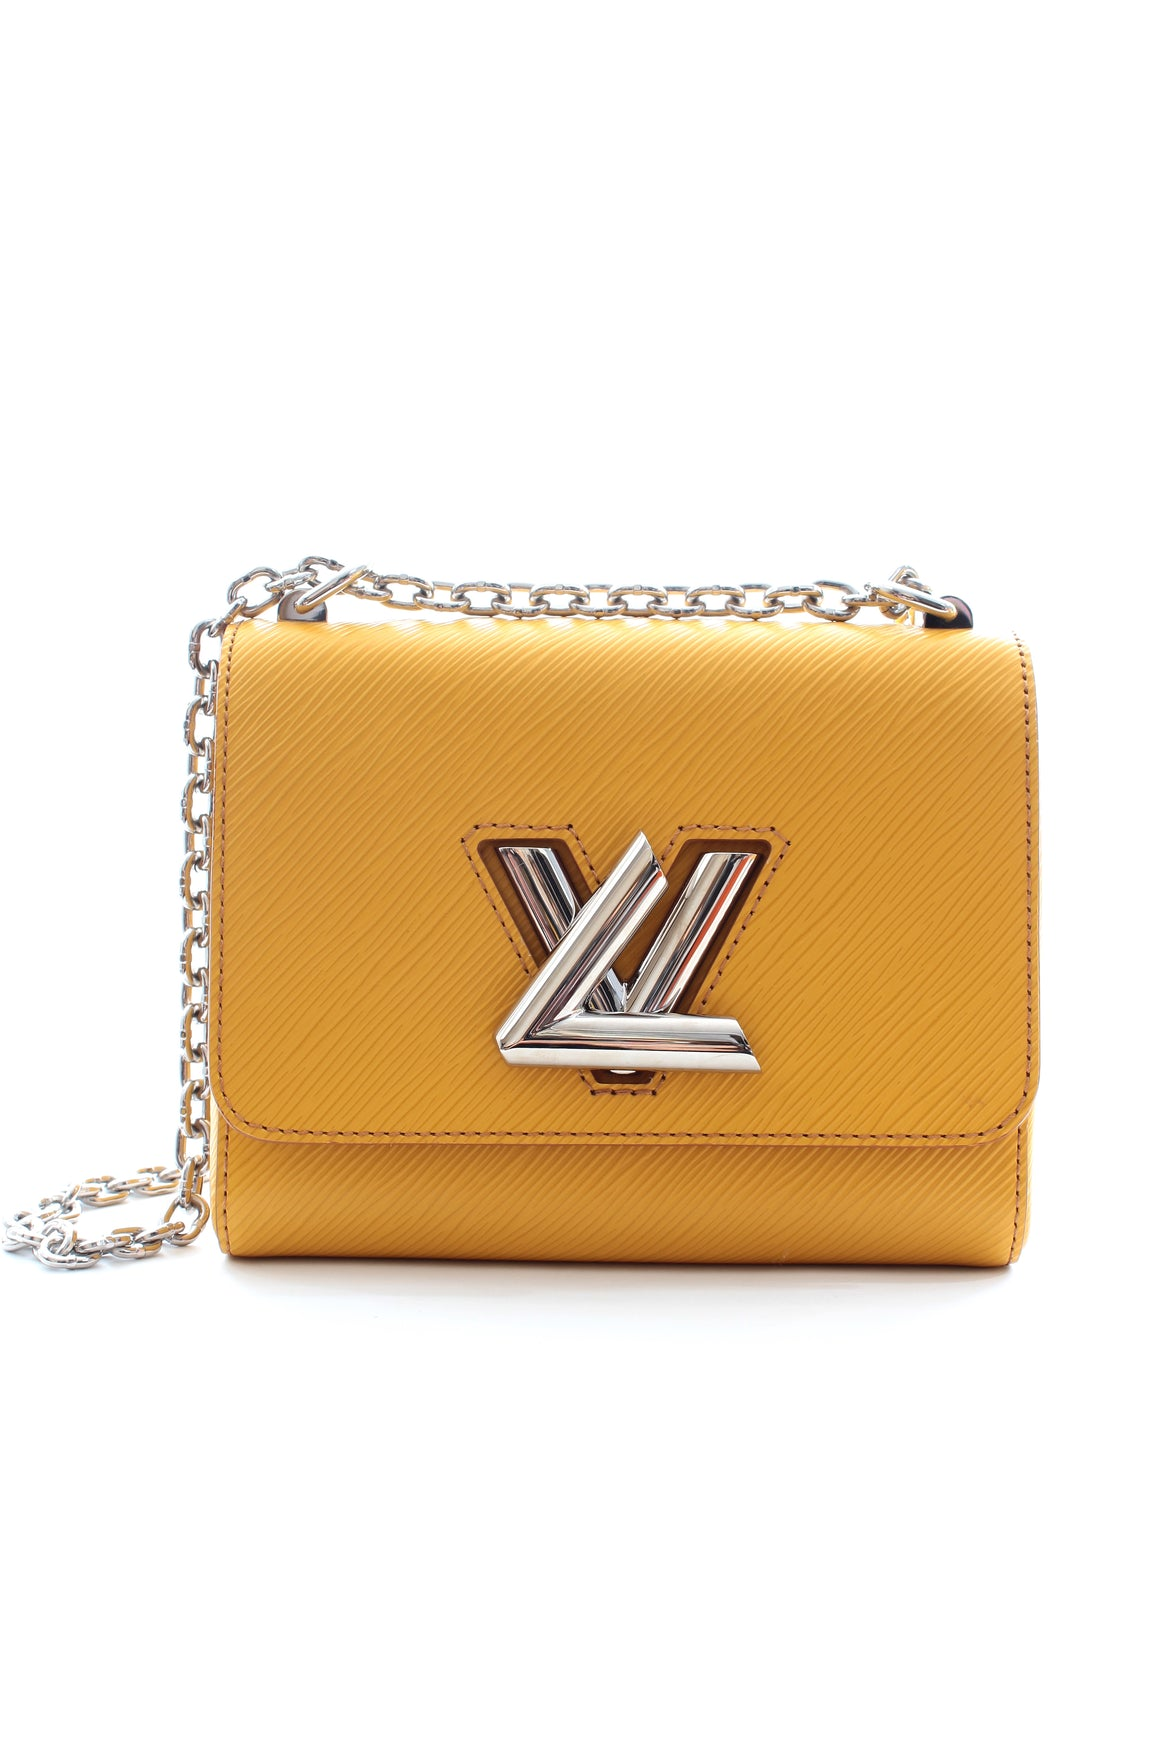 Louis Vuitton Twist PM Epi Leather Bag